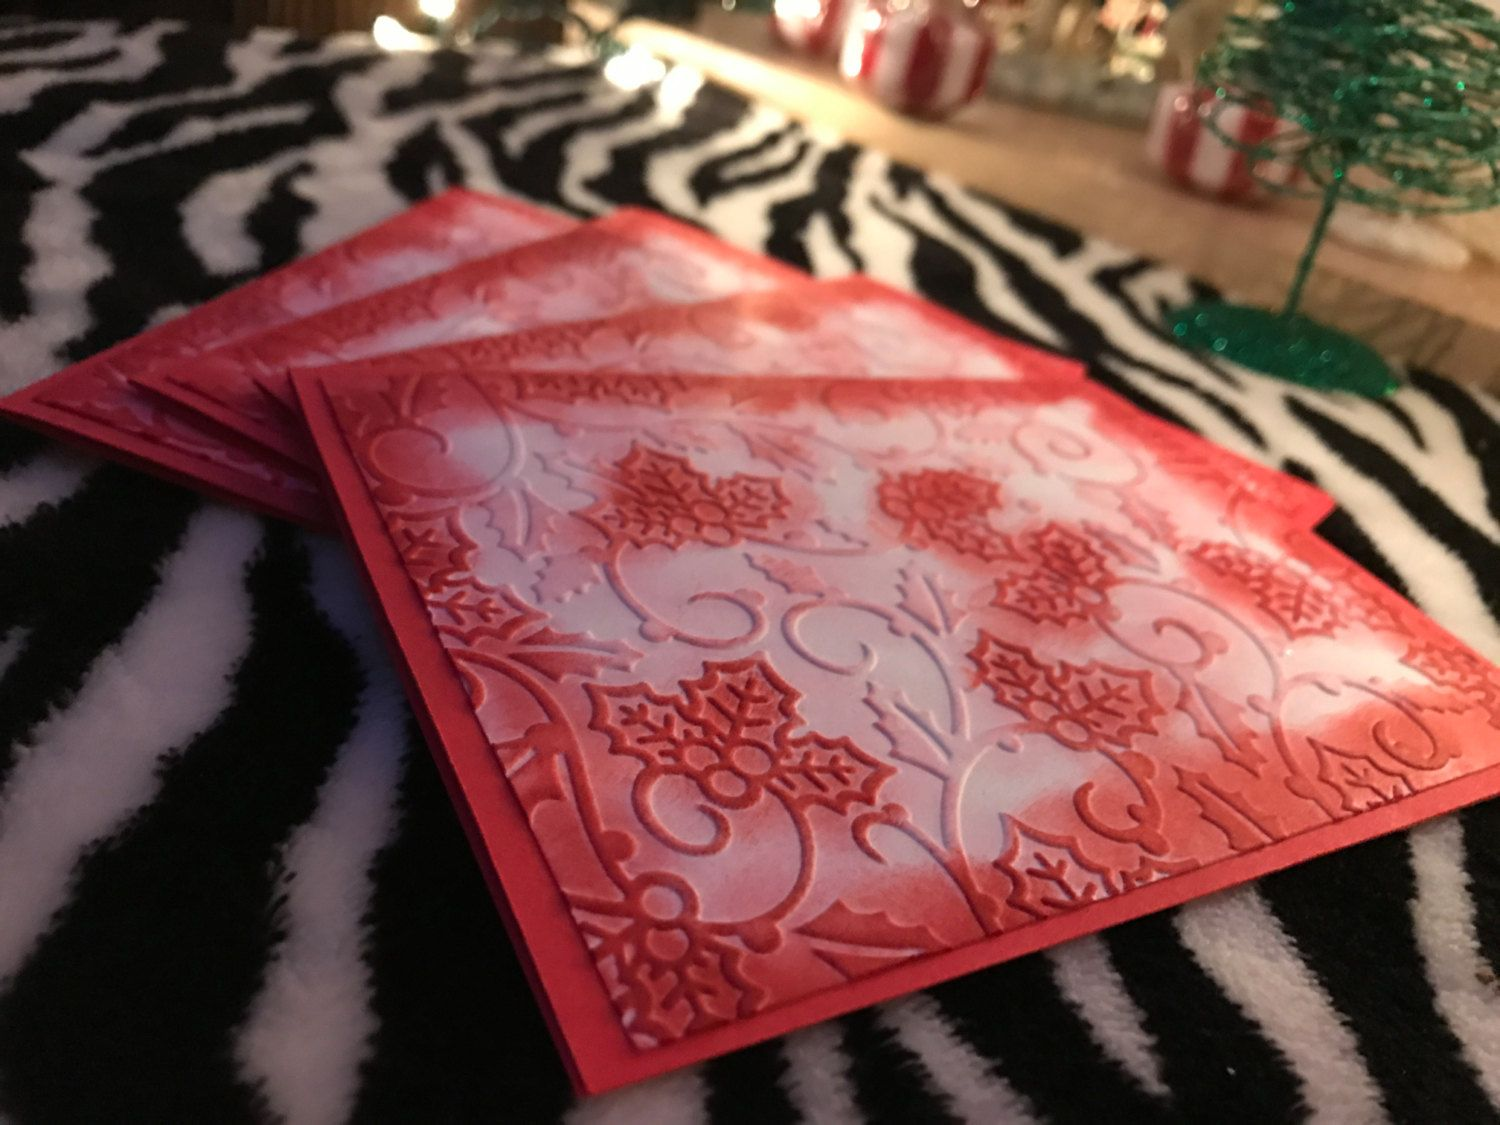 4 embossed mistletoe card set, red card set, blank card set, made in hawaii, gifts for him/her, handmade holiday card set,tis the season. by xoxoTi on Etsy